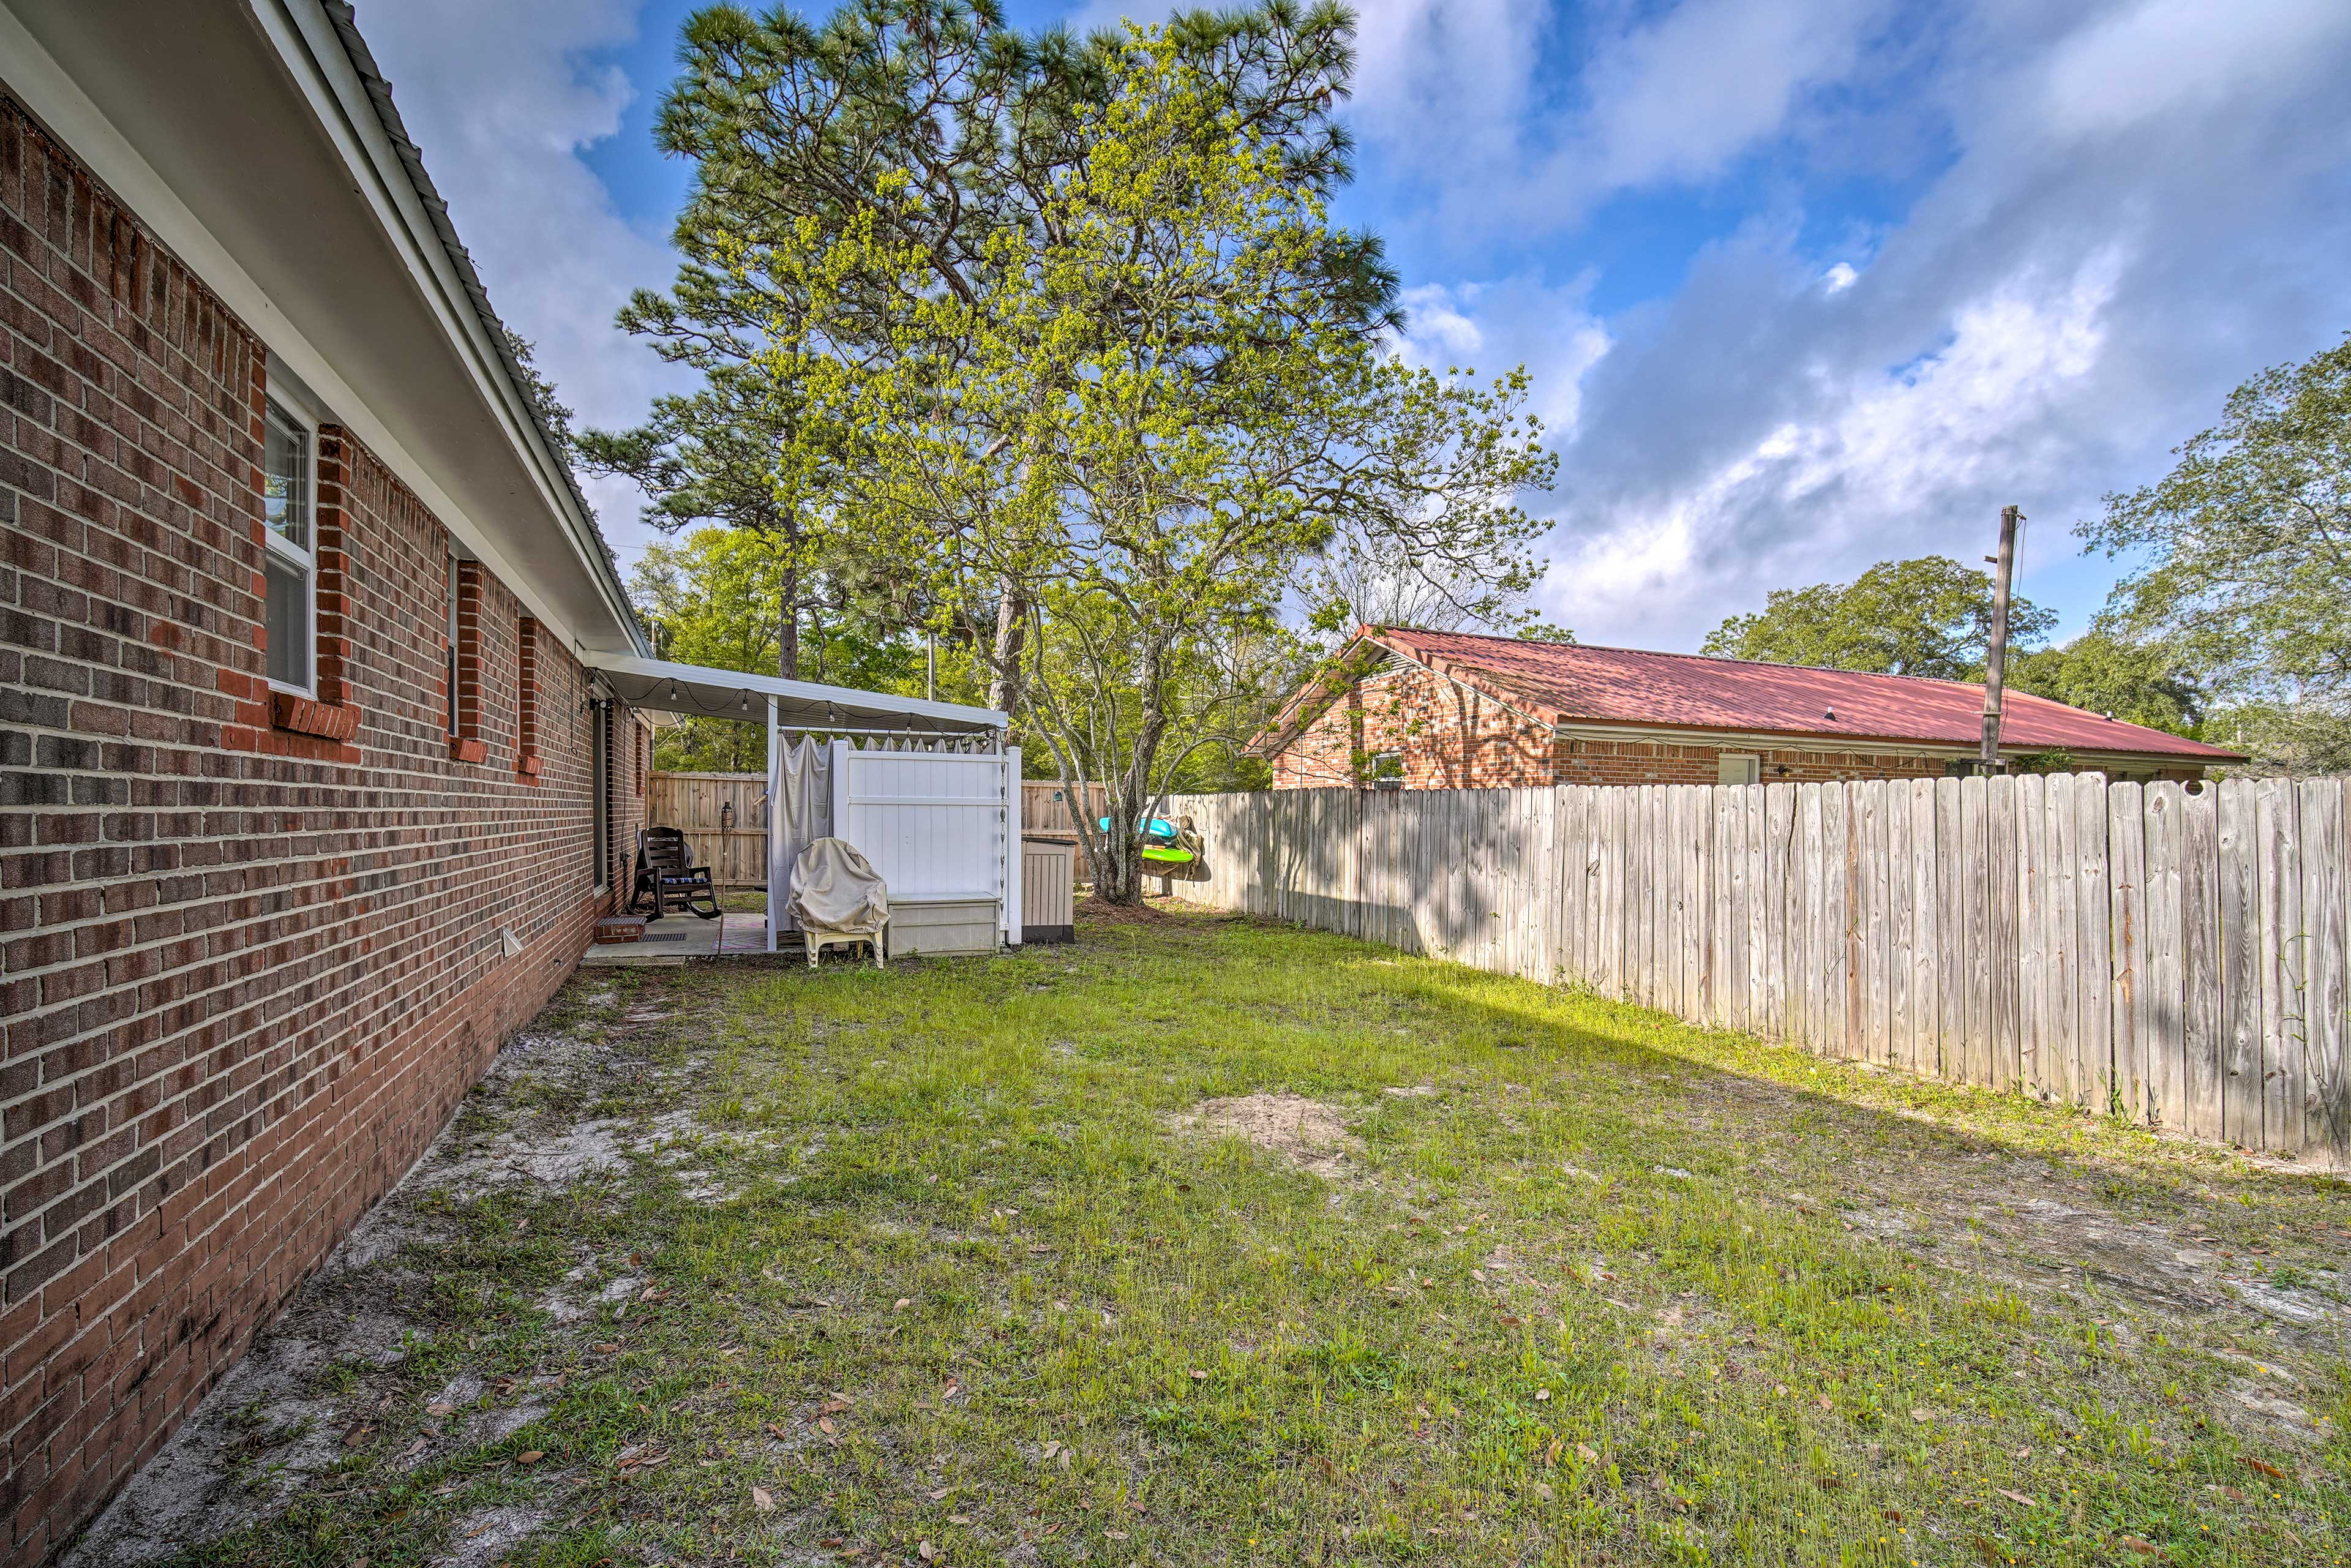 The large yard is surrounded by a privacy fence.